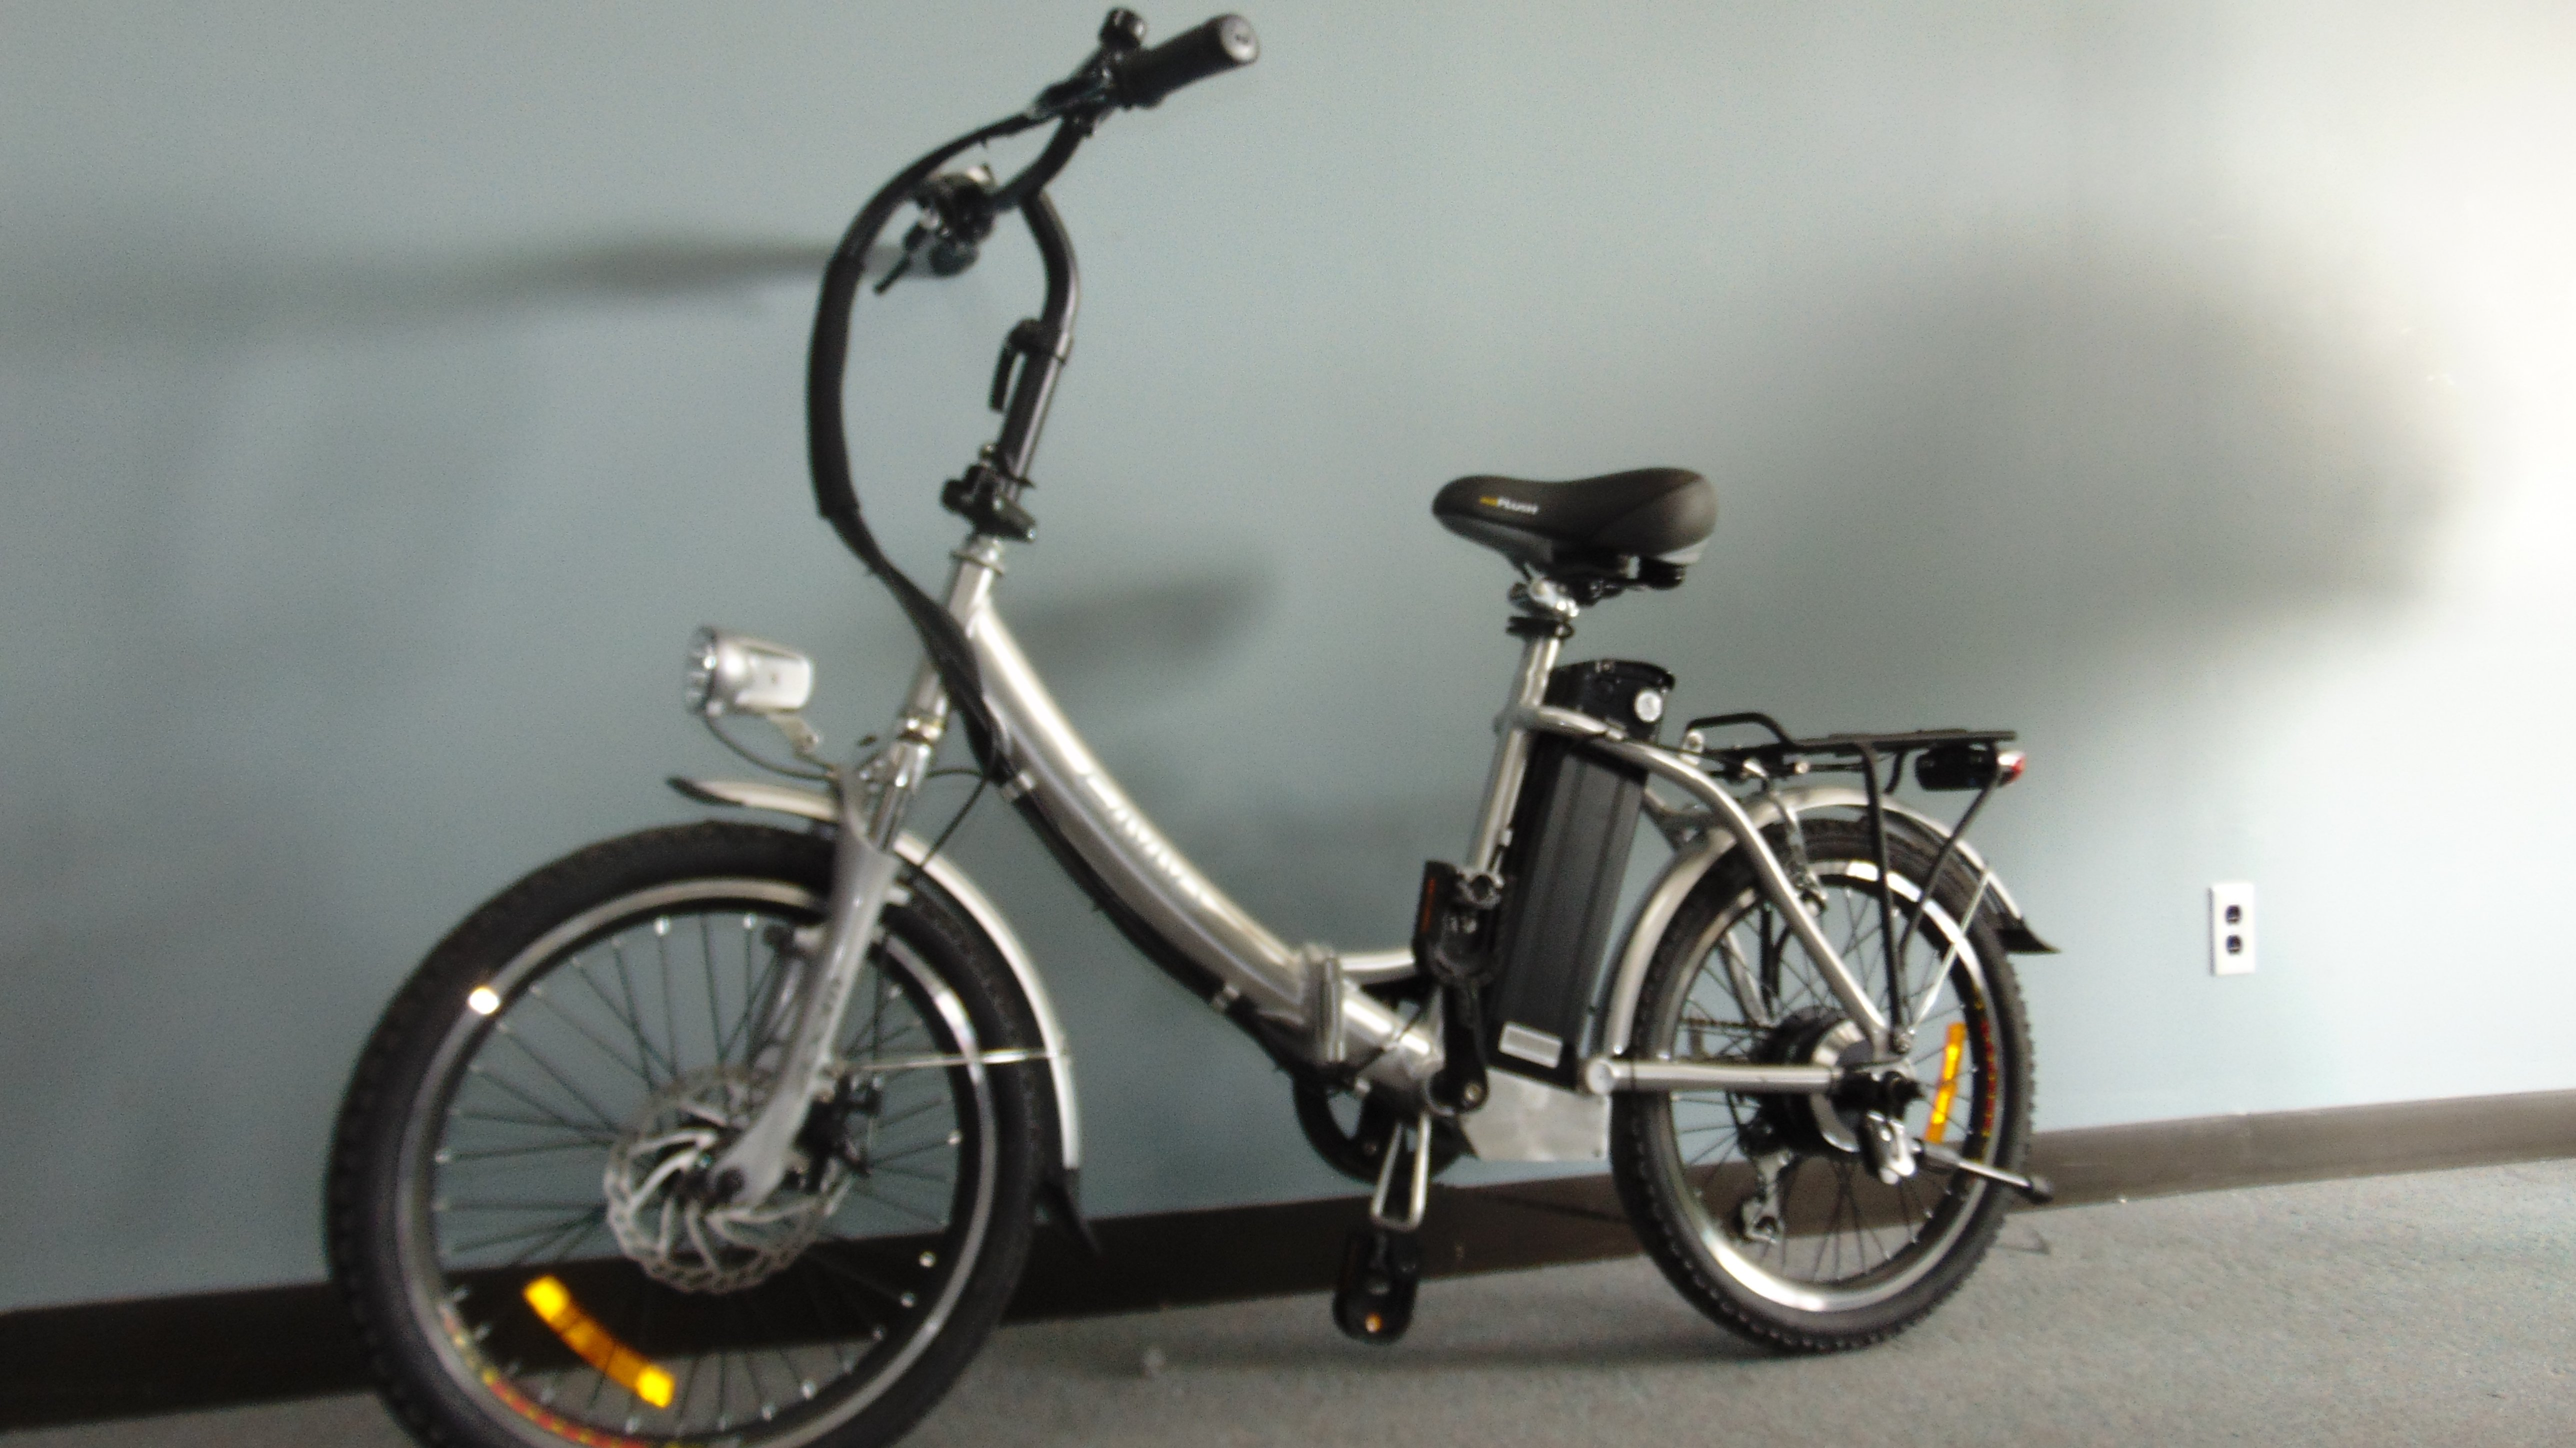 EMMO F7 ebicycle